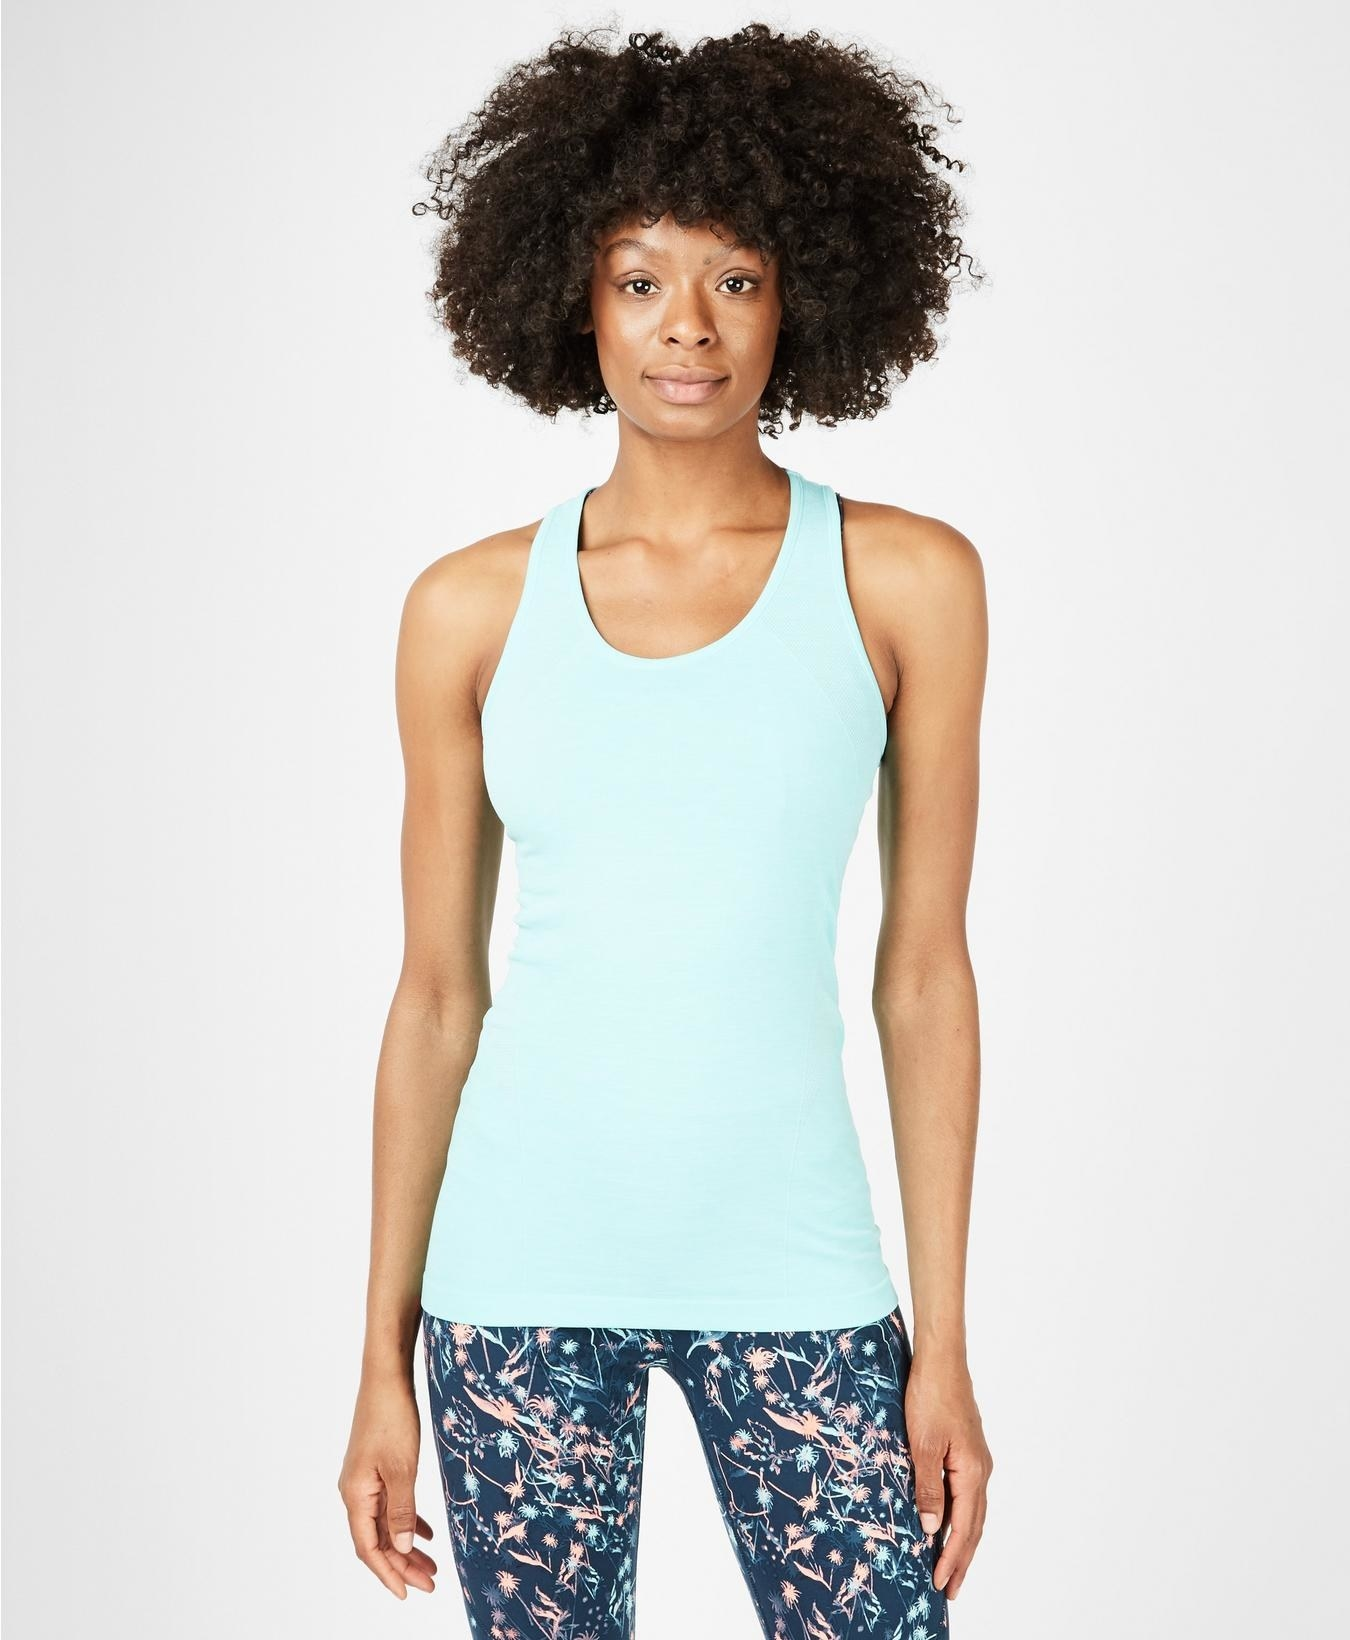 Model wearing the fitted tank top in light blue